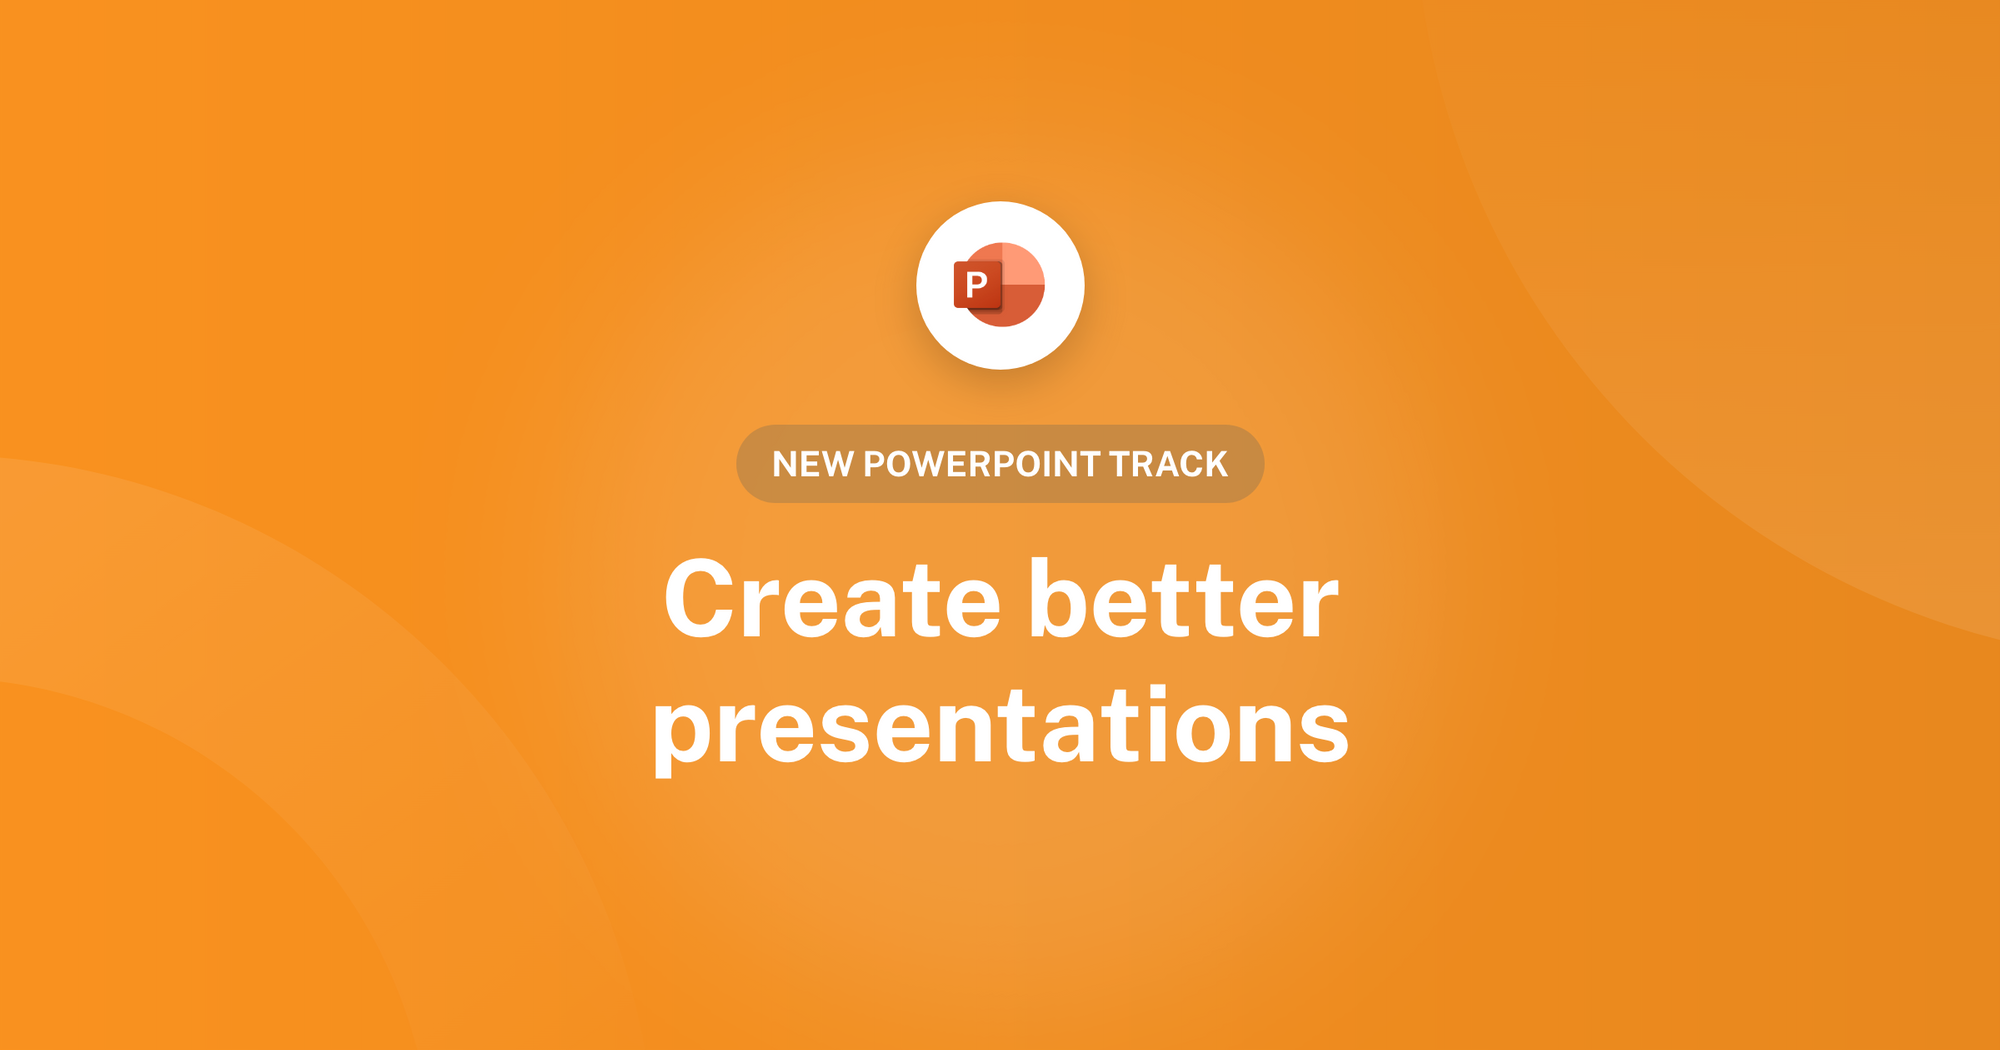 An inspiring, convincing PowerPoint presentation: yes, it's possible